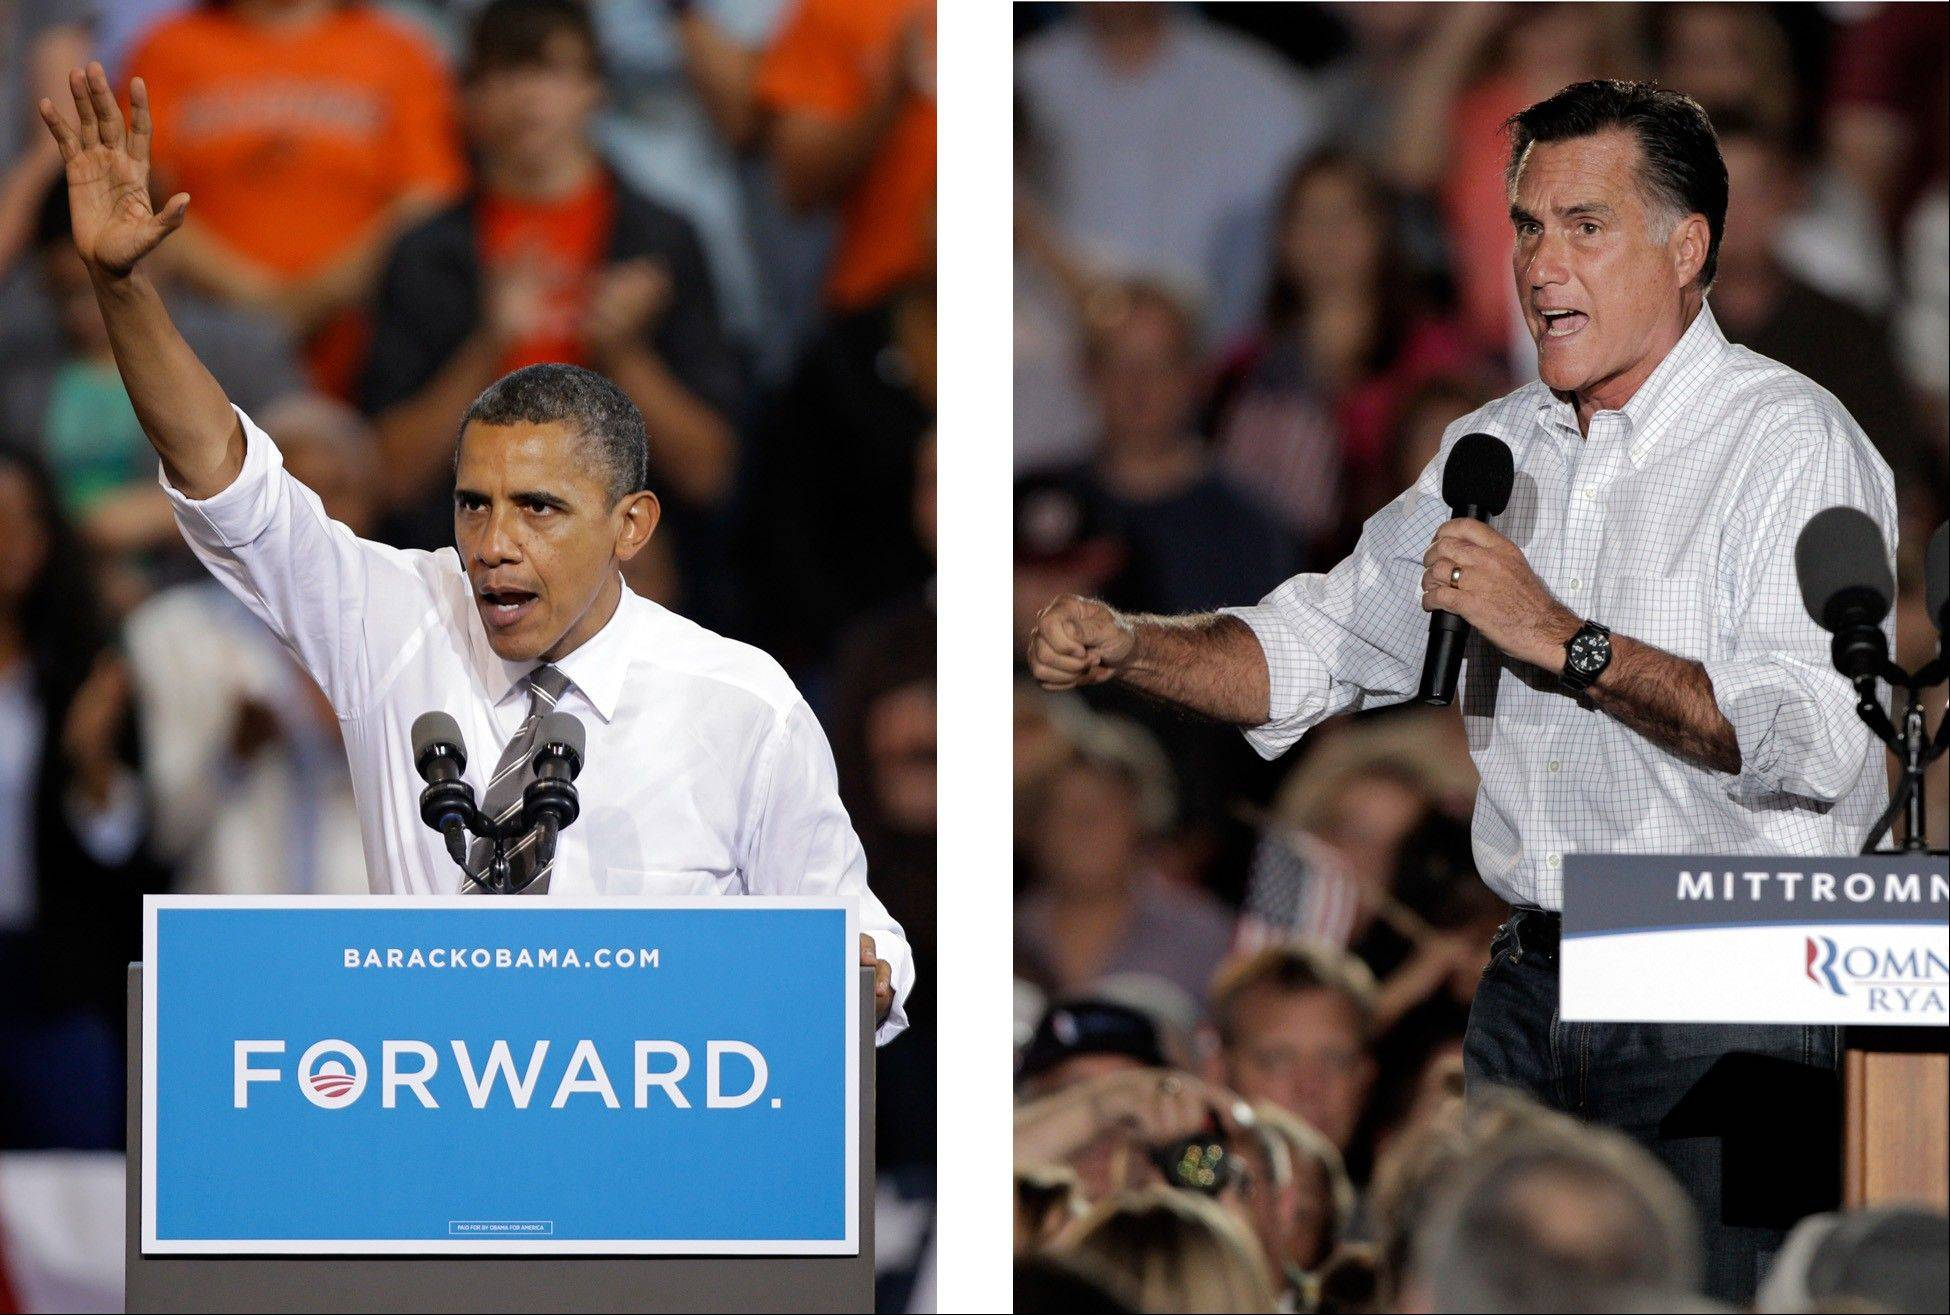 Associated PRESS PHOTO ILLUSTRATIONPresident Barack Obama and Republican presidential candidate Mitt Romney both campaign in the battleground state of Ohio. Fierce and determined competitors, Obama and Romney each have a specific mission for the string of three debates that starts Wednesday night.